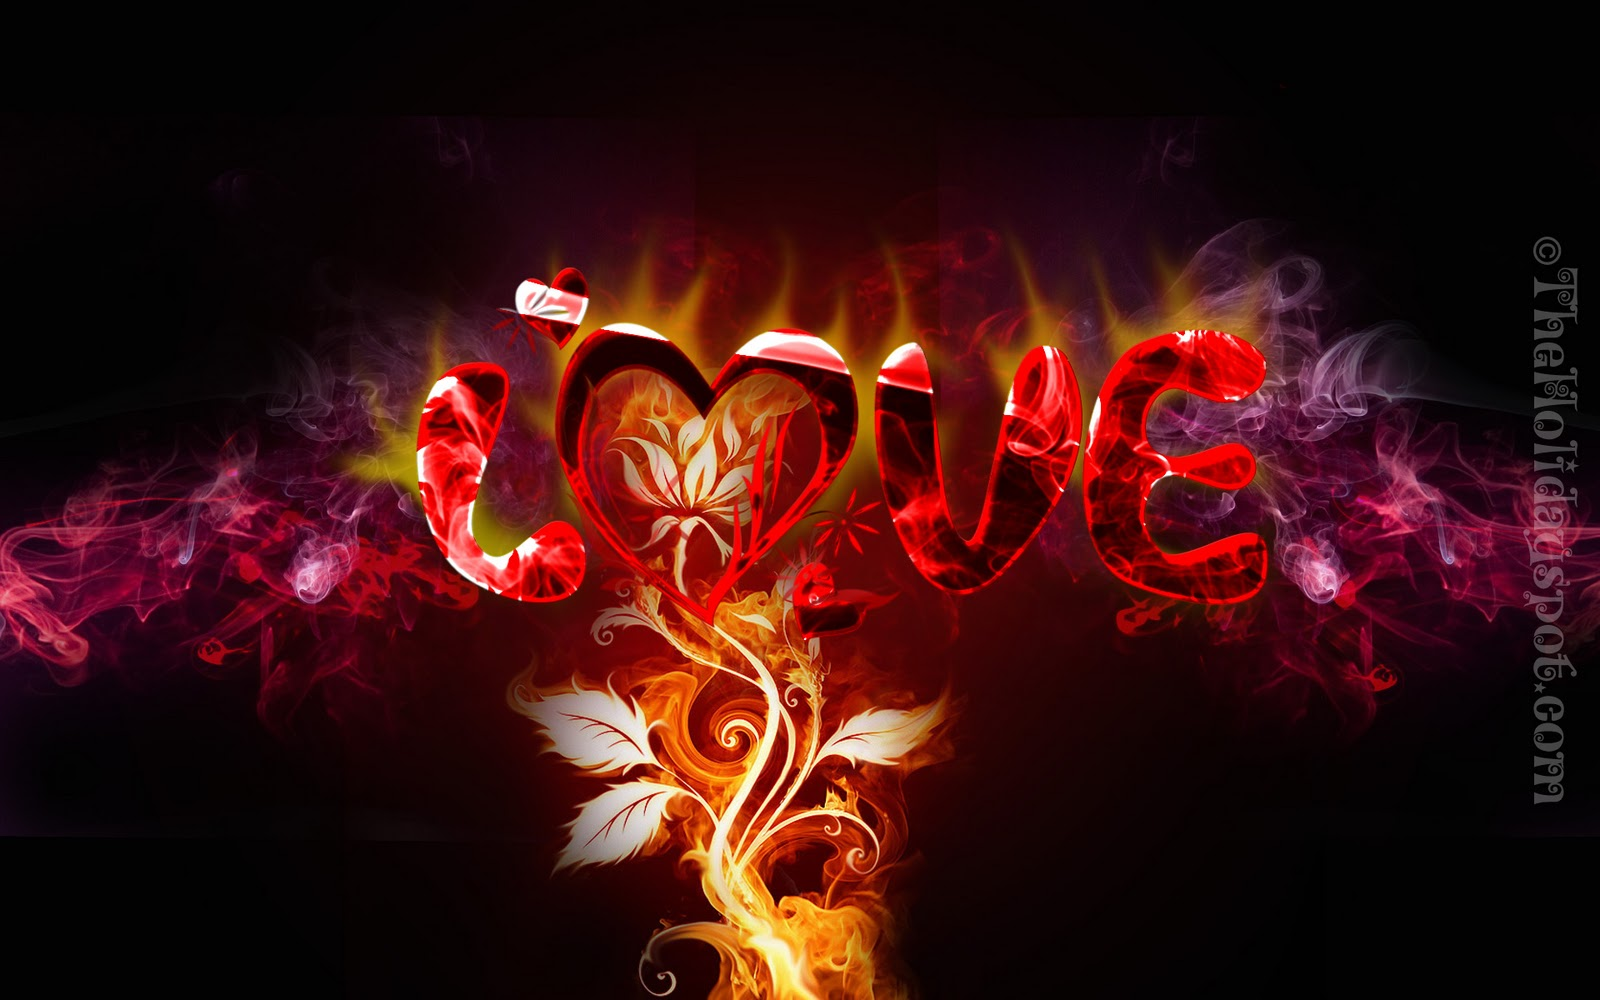 3d Wallpapers Hd L Love You Images Download 1600x1000 Download Hd Wallpaper Wallpapertip